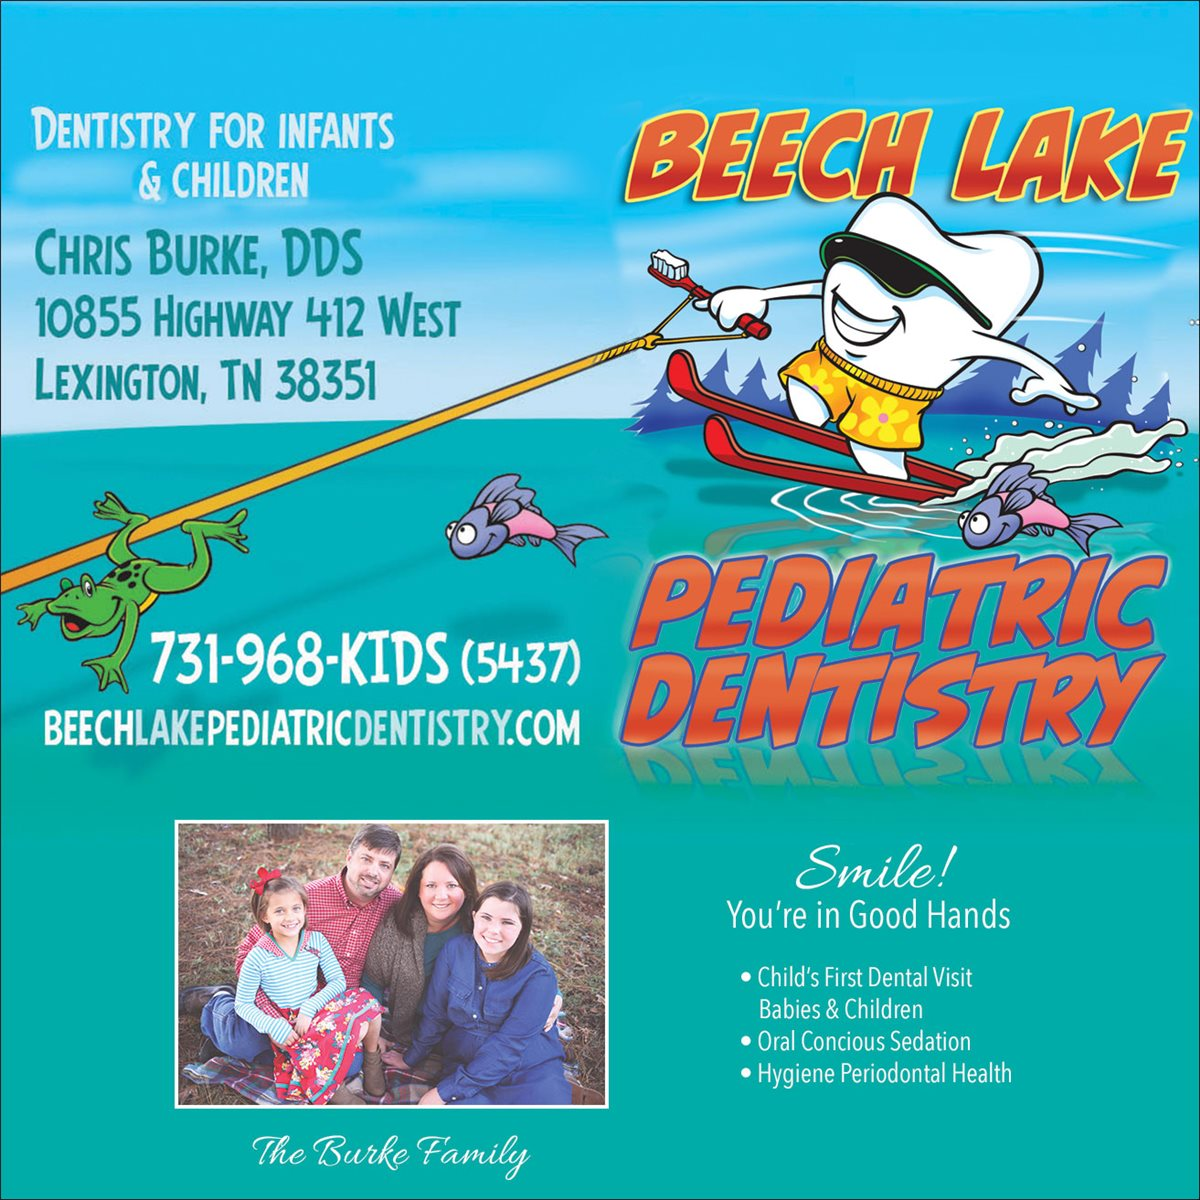 Beech Lake Pediatric Dentistry